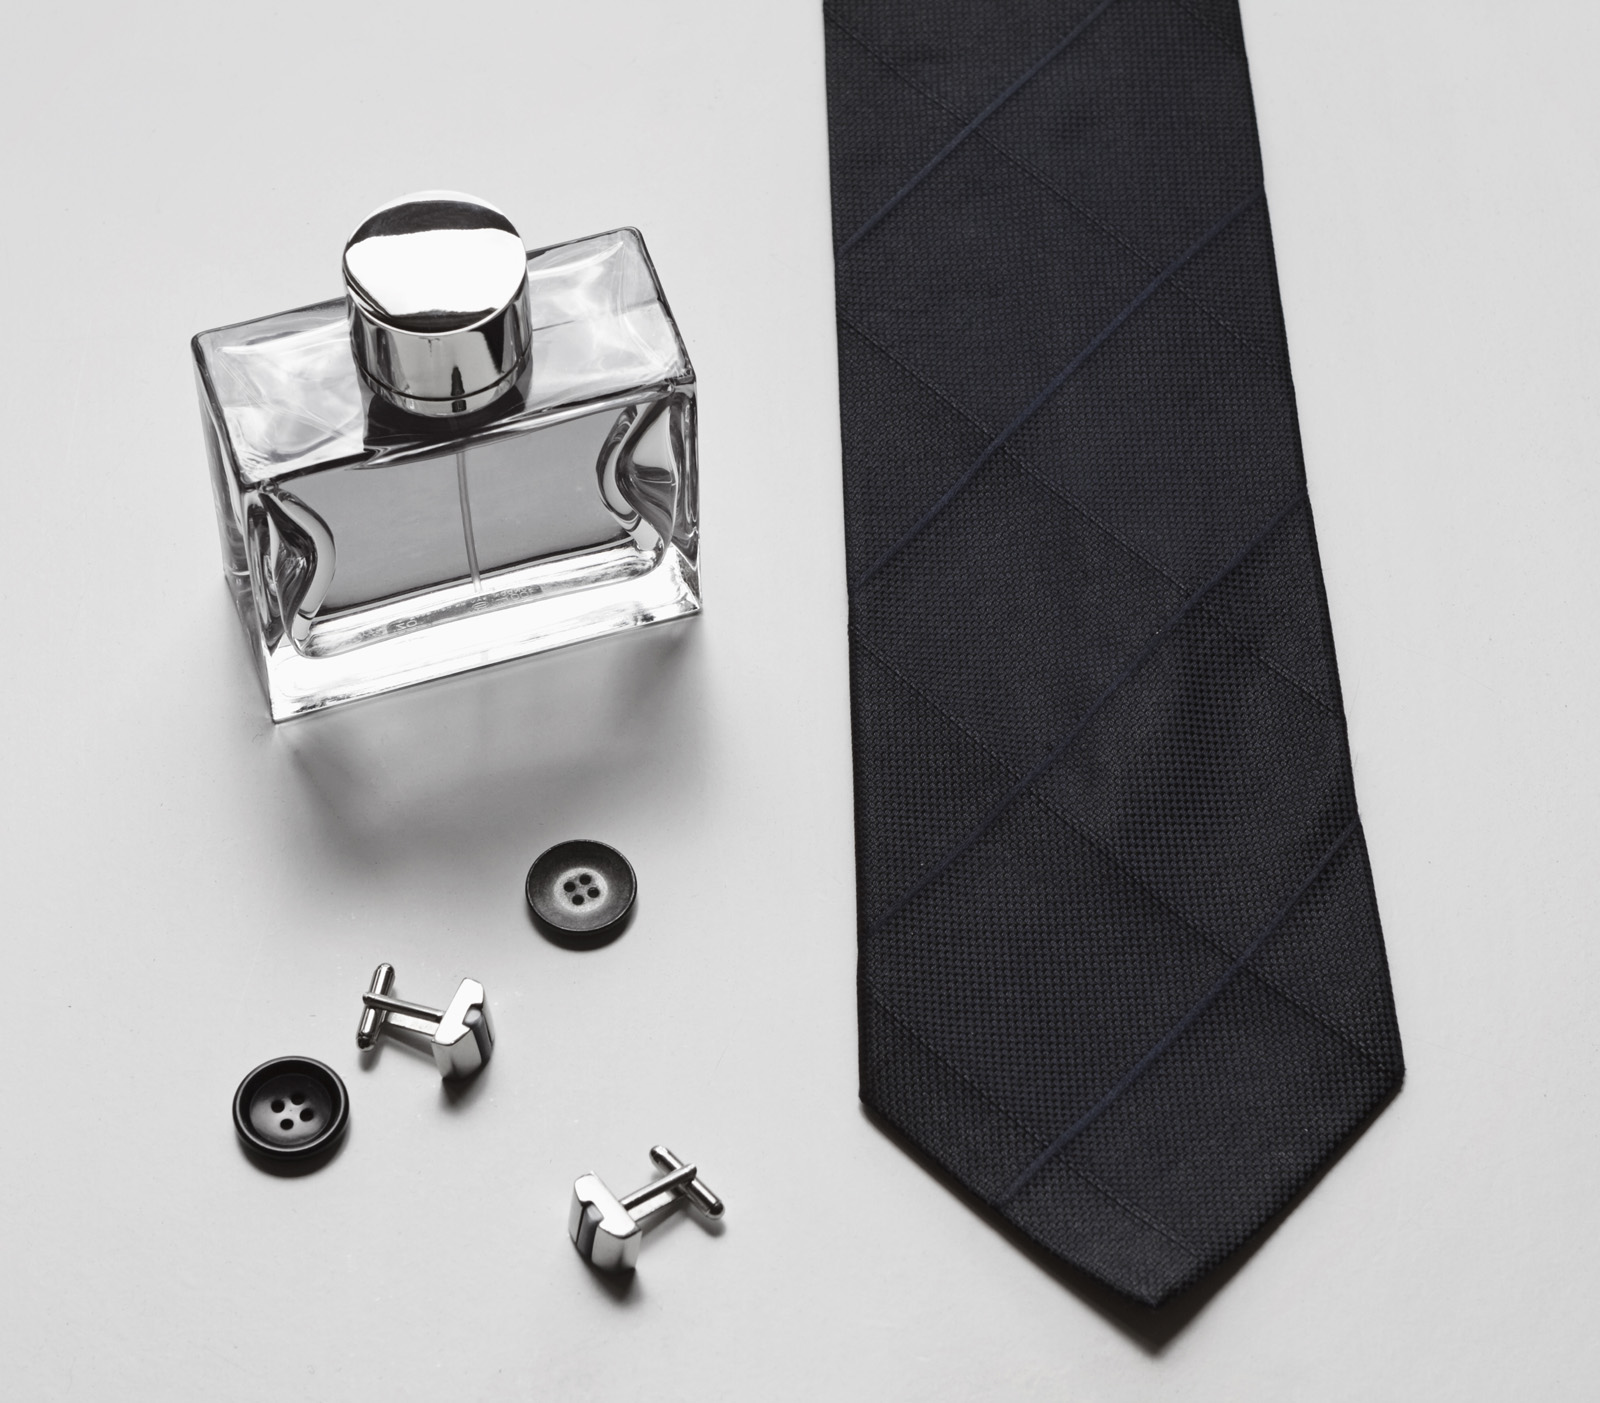 Perfumes and men's ties button 51703